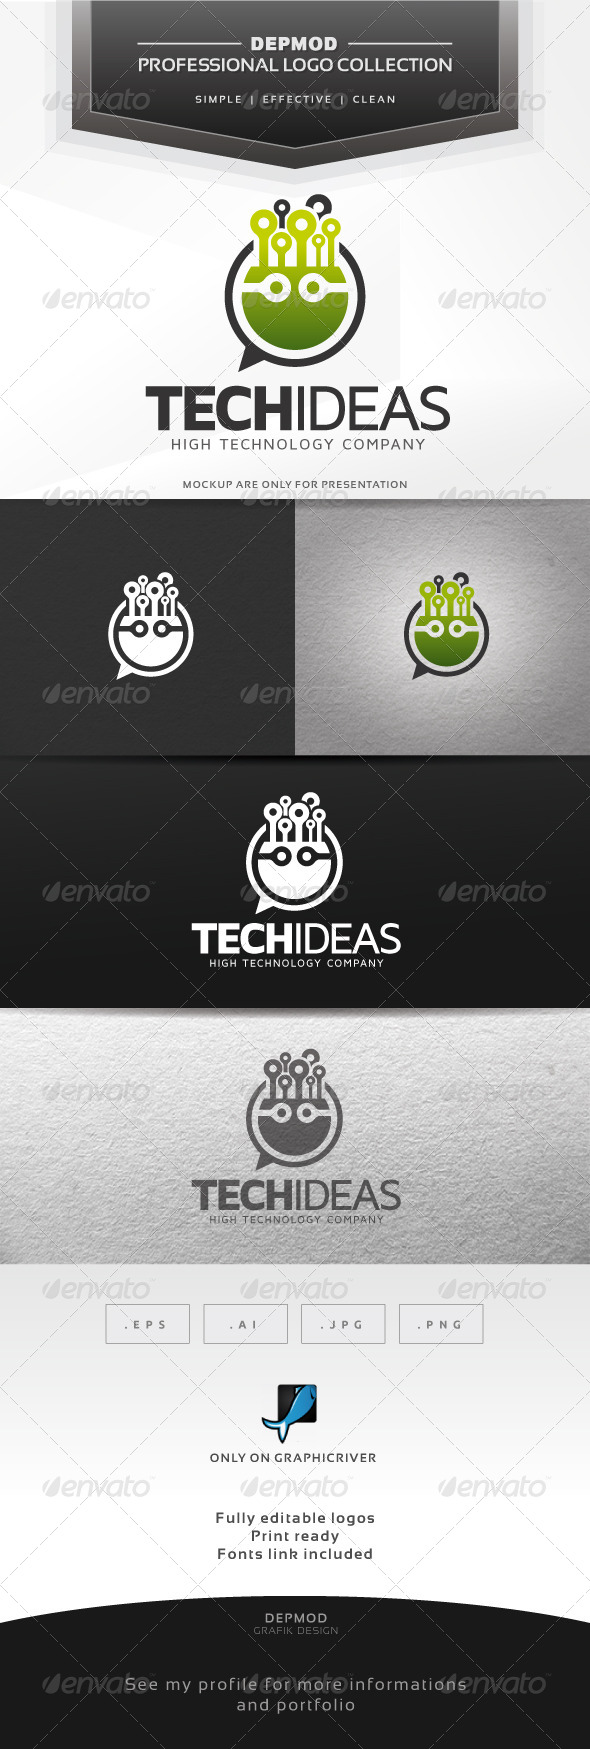 Tech Ideas Logo - Abstract Logo Templates